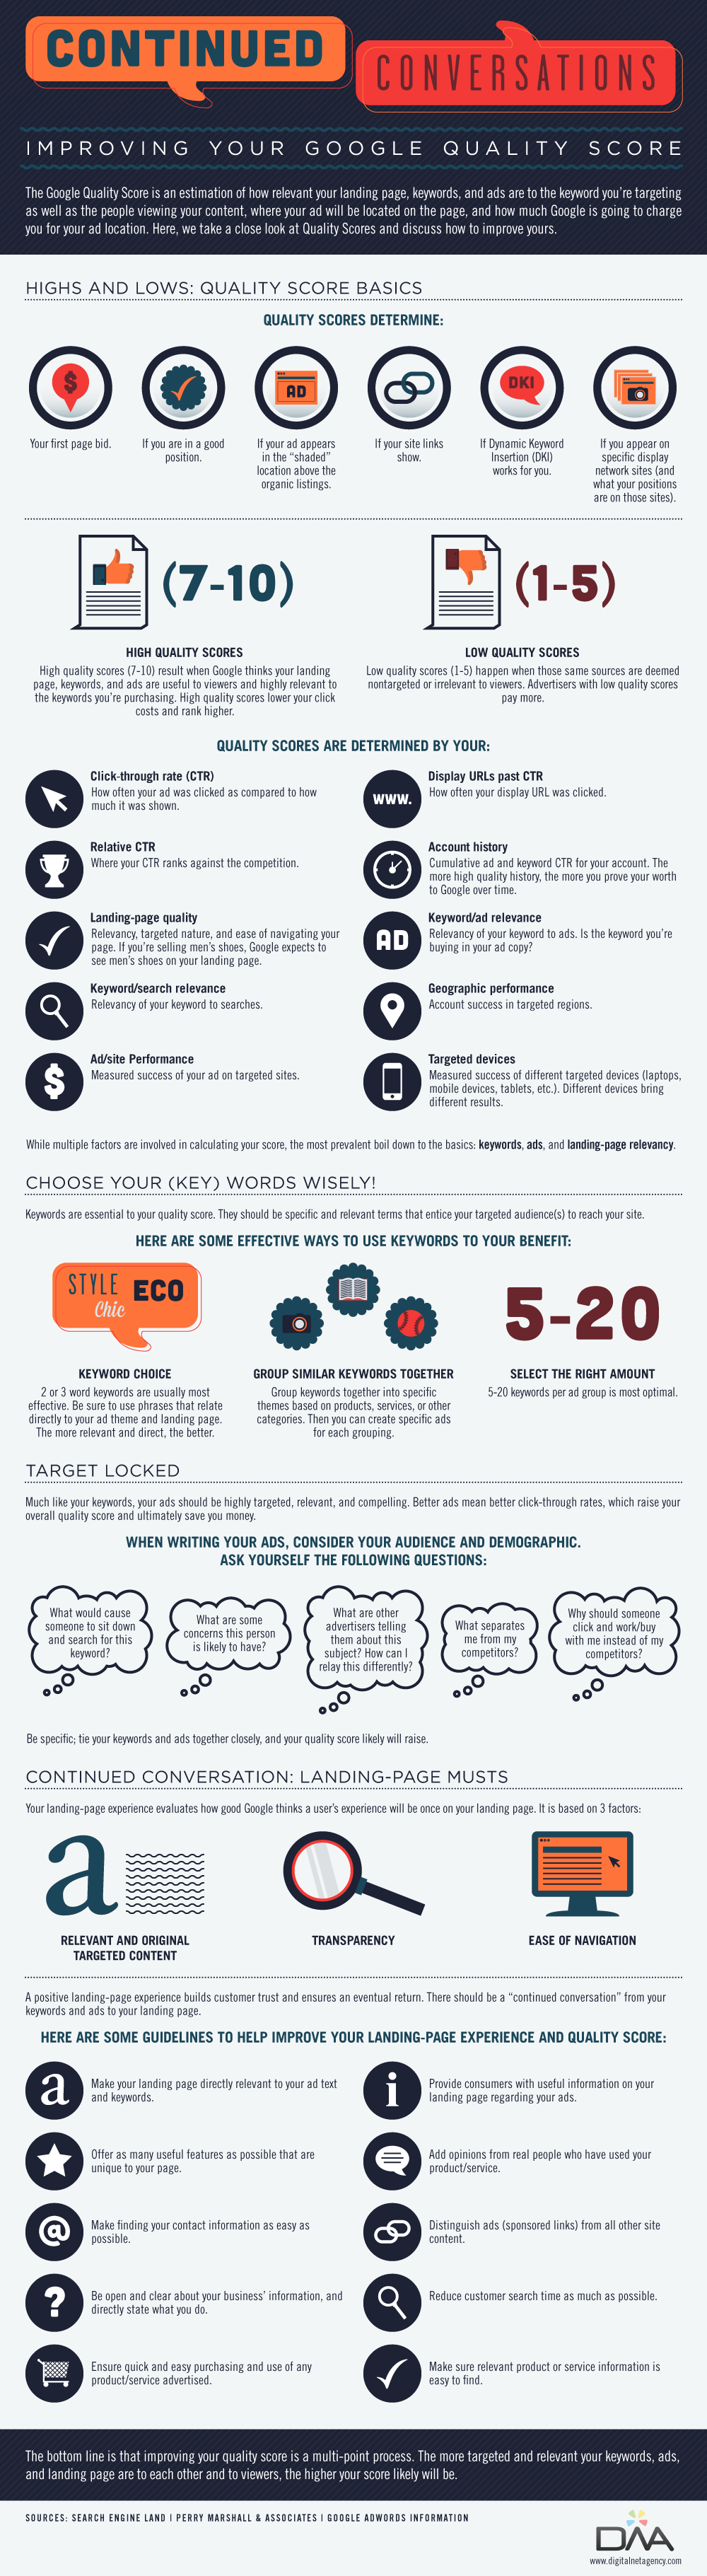 How to Improve Google Adwords Quality Scores #infographic